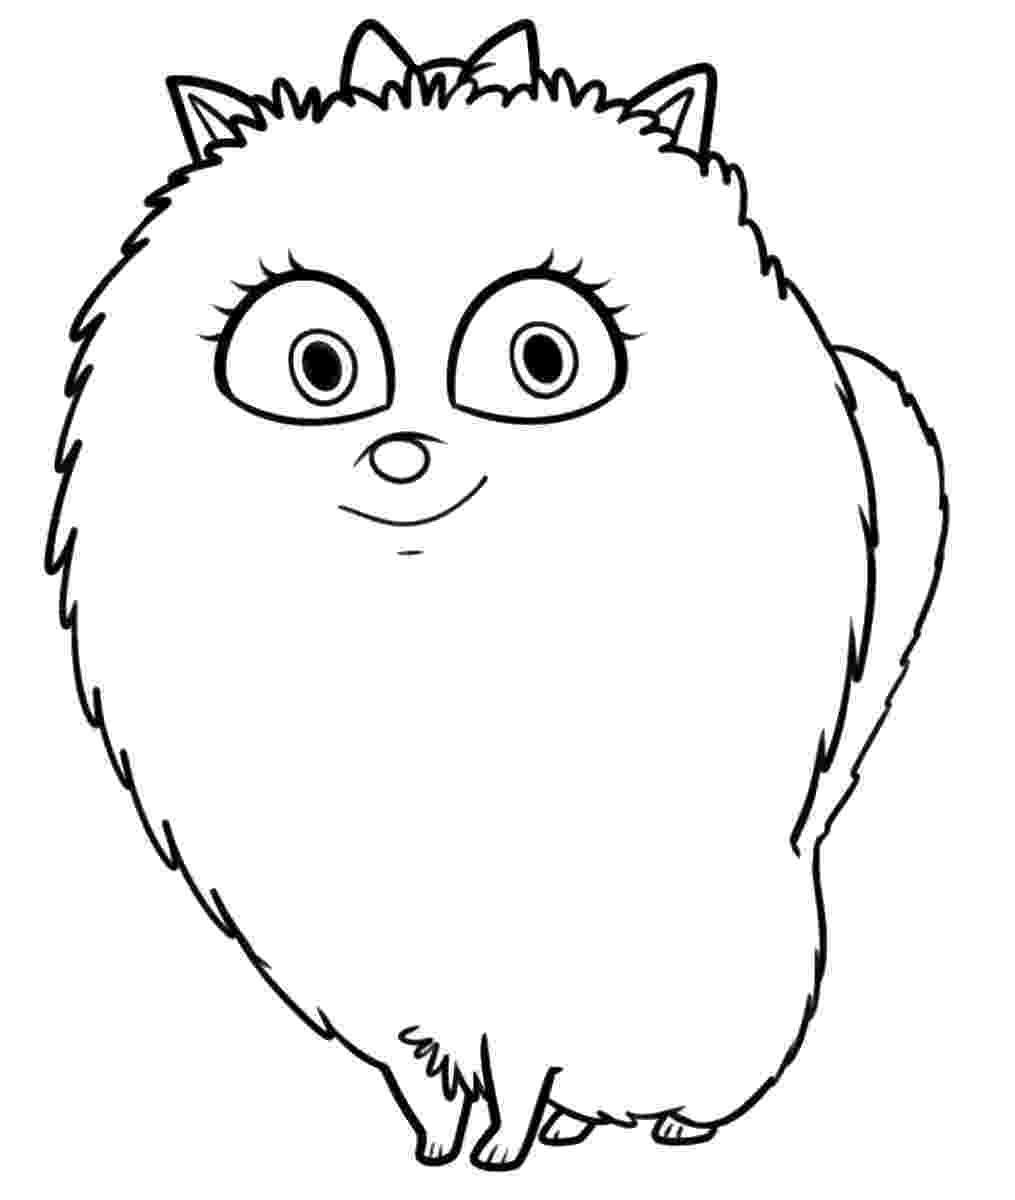 secret life of pets printables max from the secret life of pets coloring page printables secret life of pets